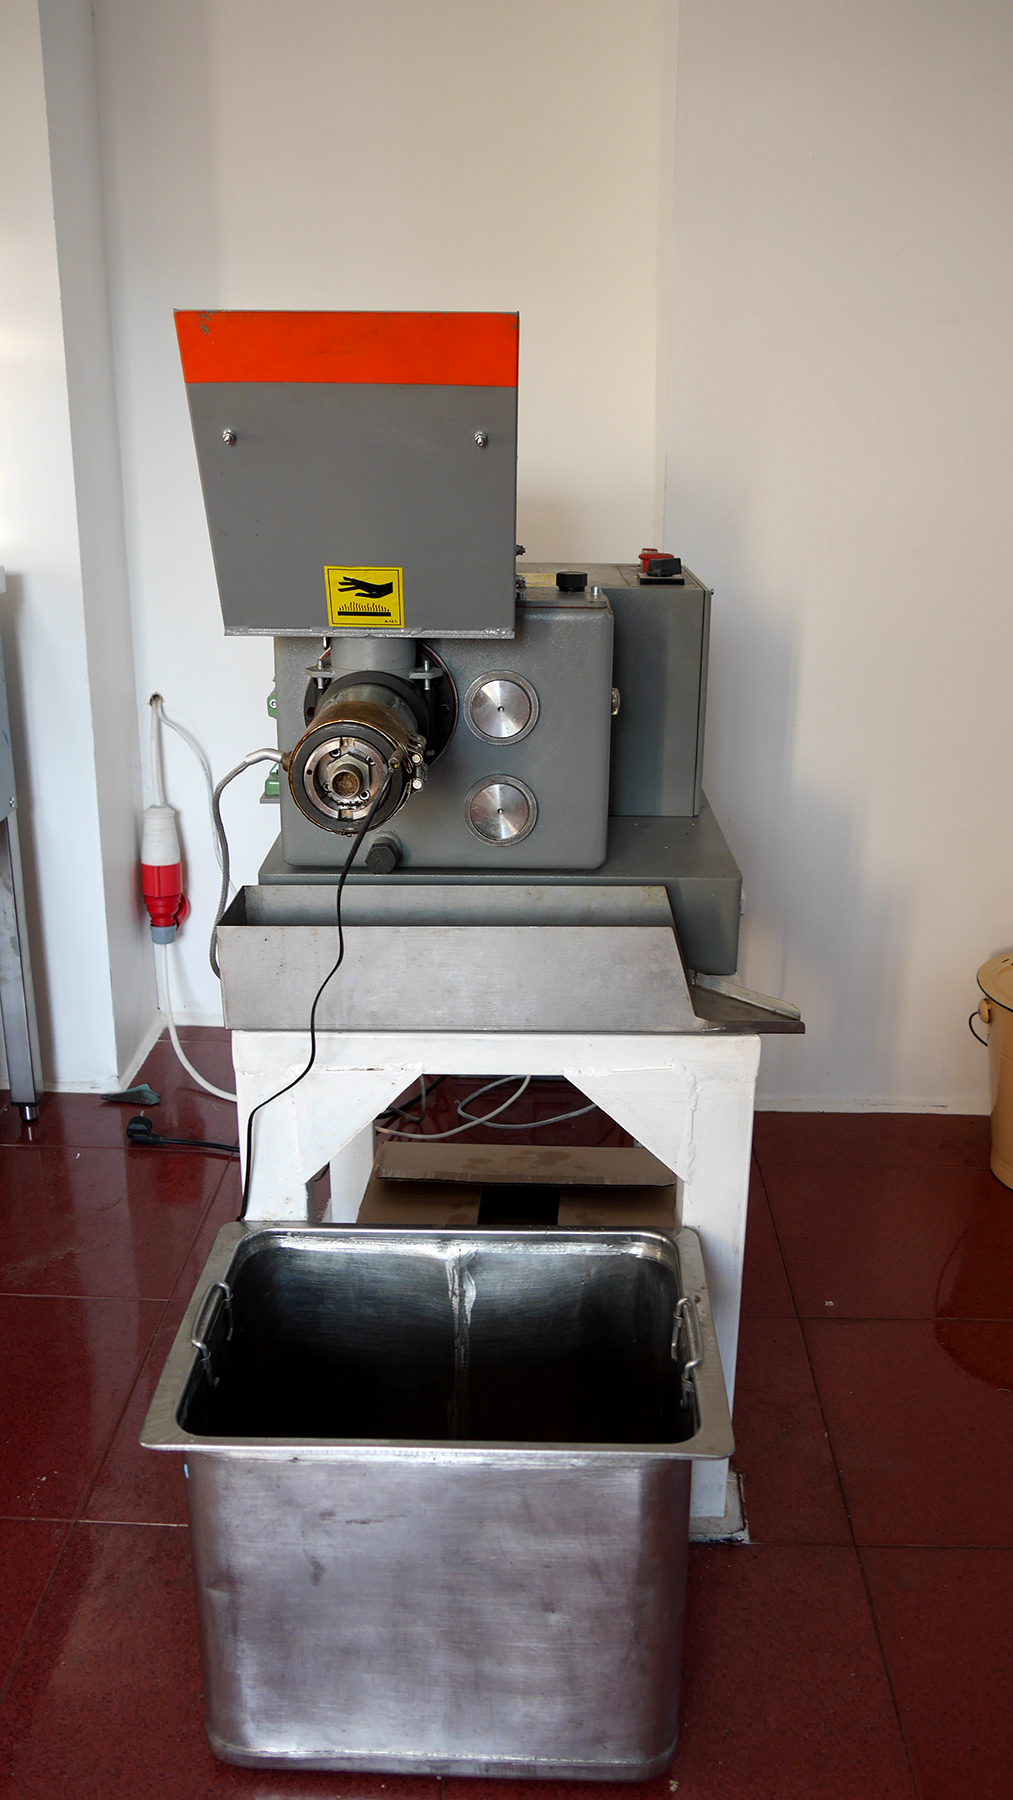 The new machine, which is able to make the cold pressed oil